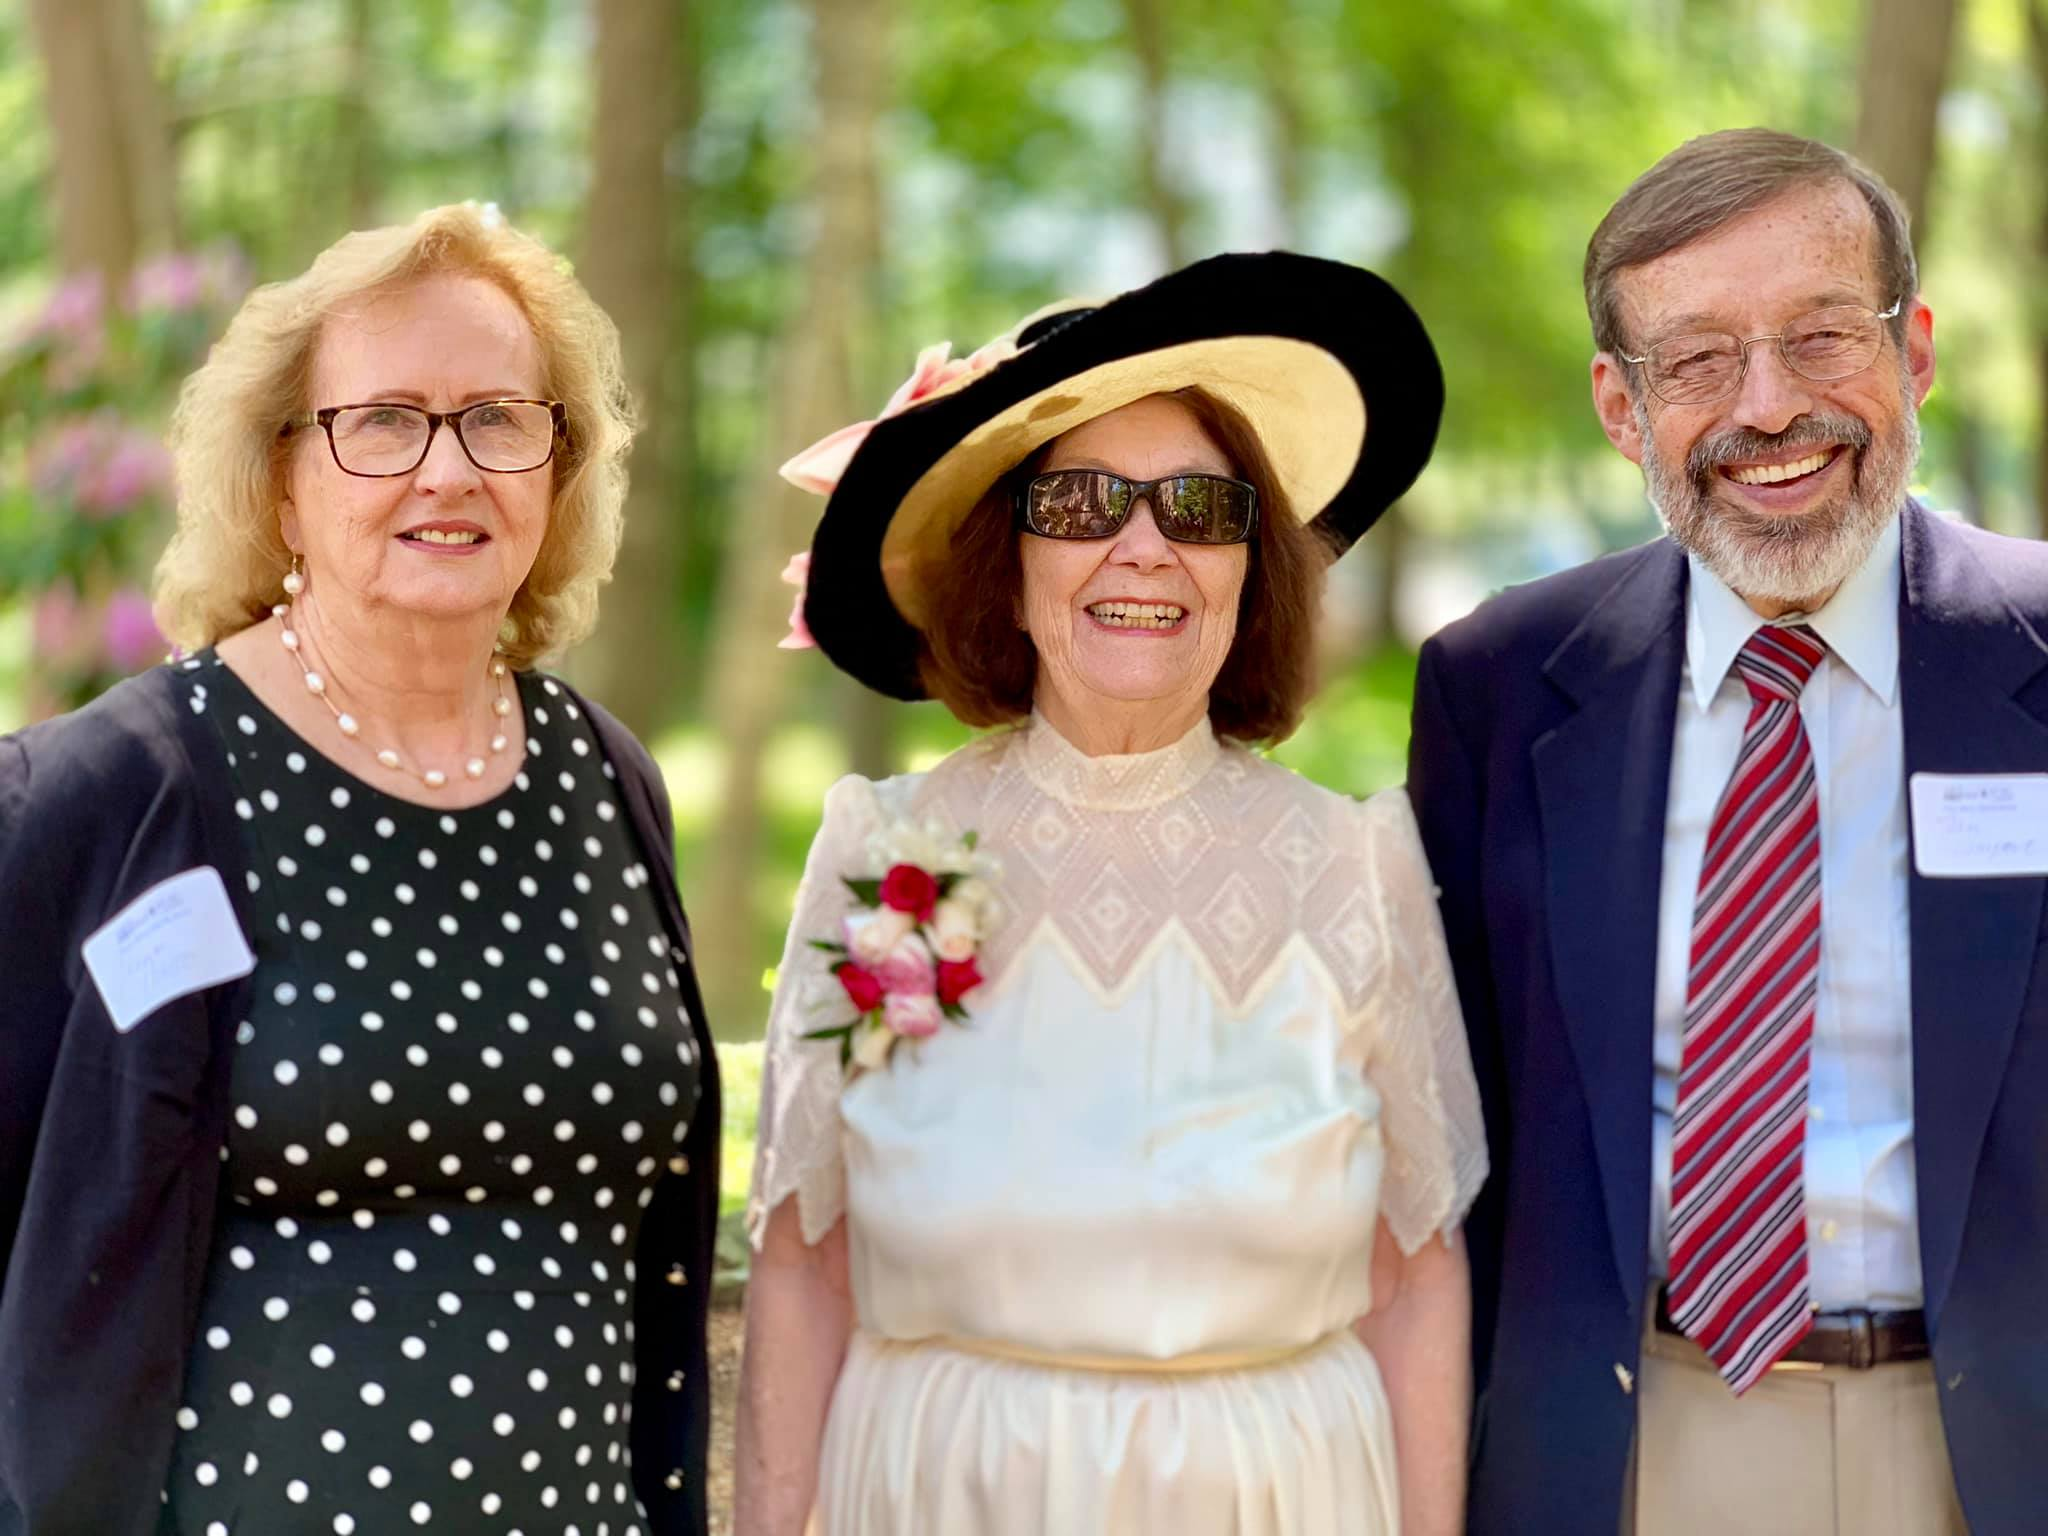 "Diane Huster, Board Member & 2019 Gala Chair; Kathy Stevens, 2019 Historic Preservation Award honoree and 1st Vice President; Stan Limpert, President, North Andover Historical Society at the June 9, 2019 ""Celebrating Our Legacy"" Gala event at Rolling Ridge Retreat & Conference Center."